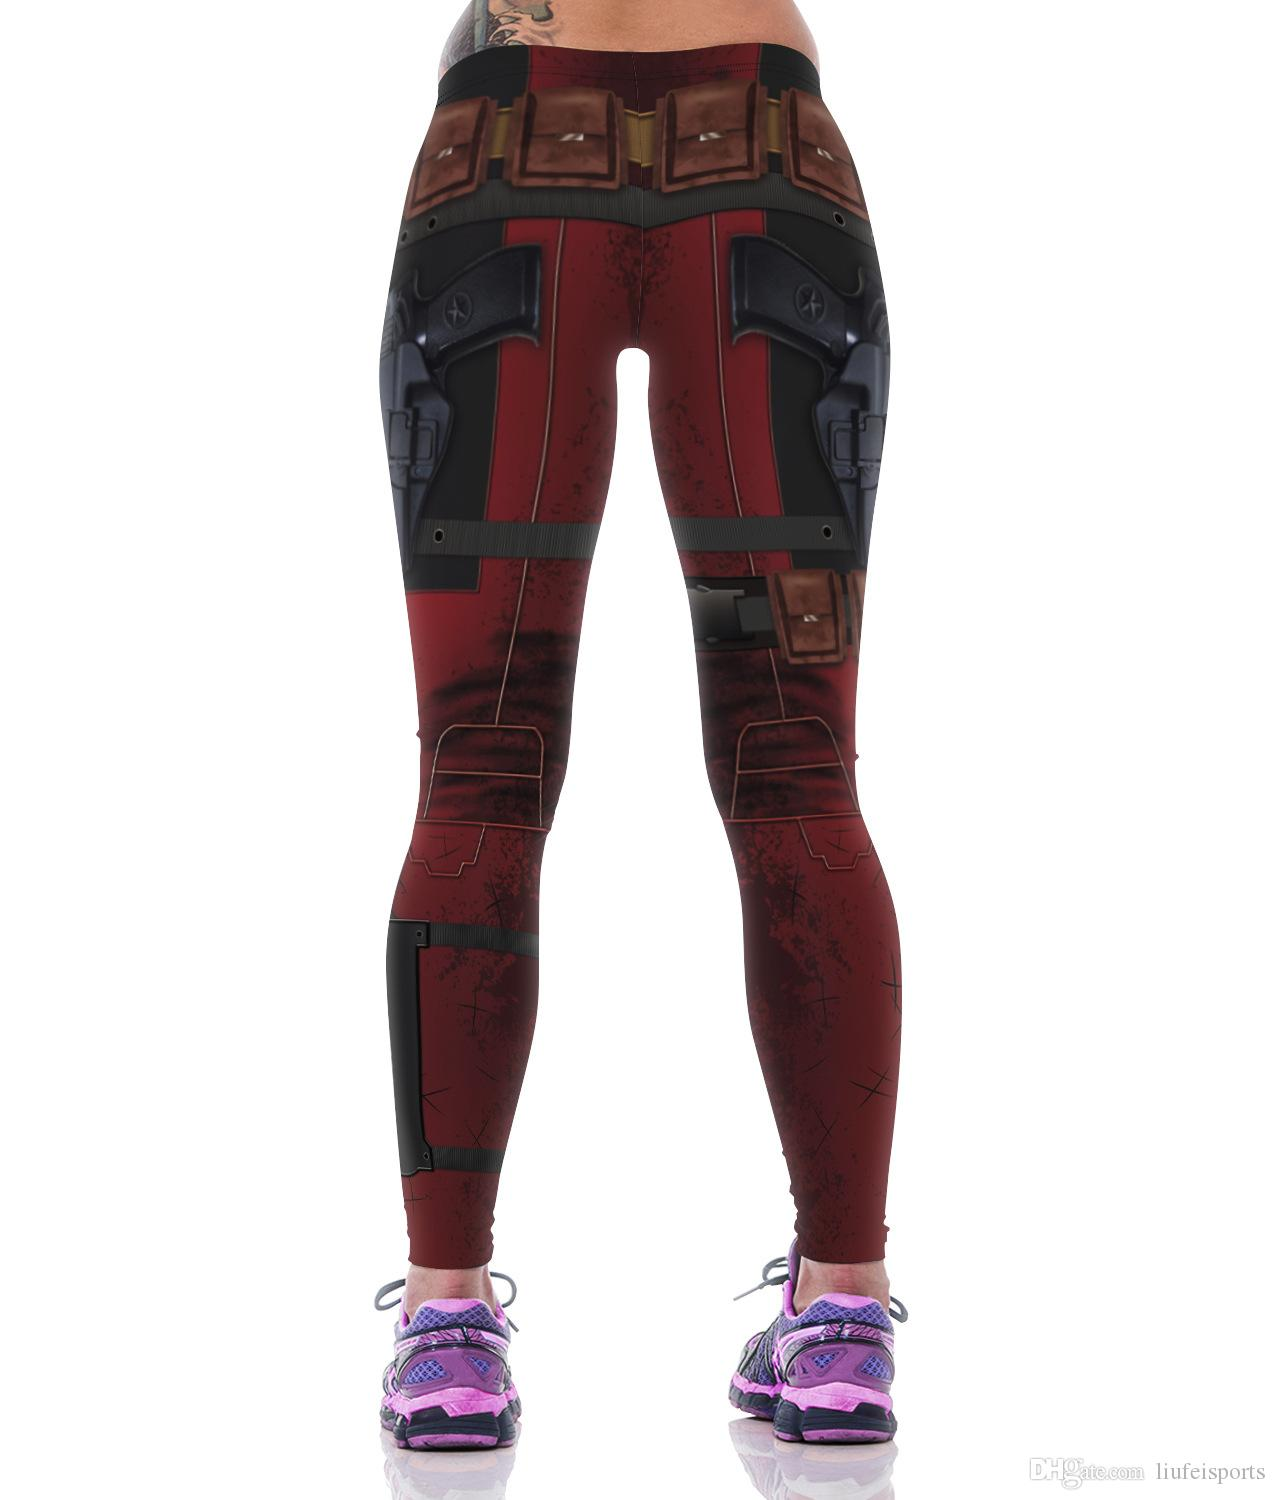 quick drying outdoor sports pants waterproofwomen Elasticity Creative uniforms personality leggings long pants gym clothing outdoors apparel